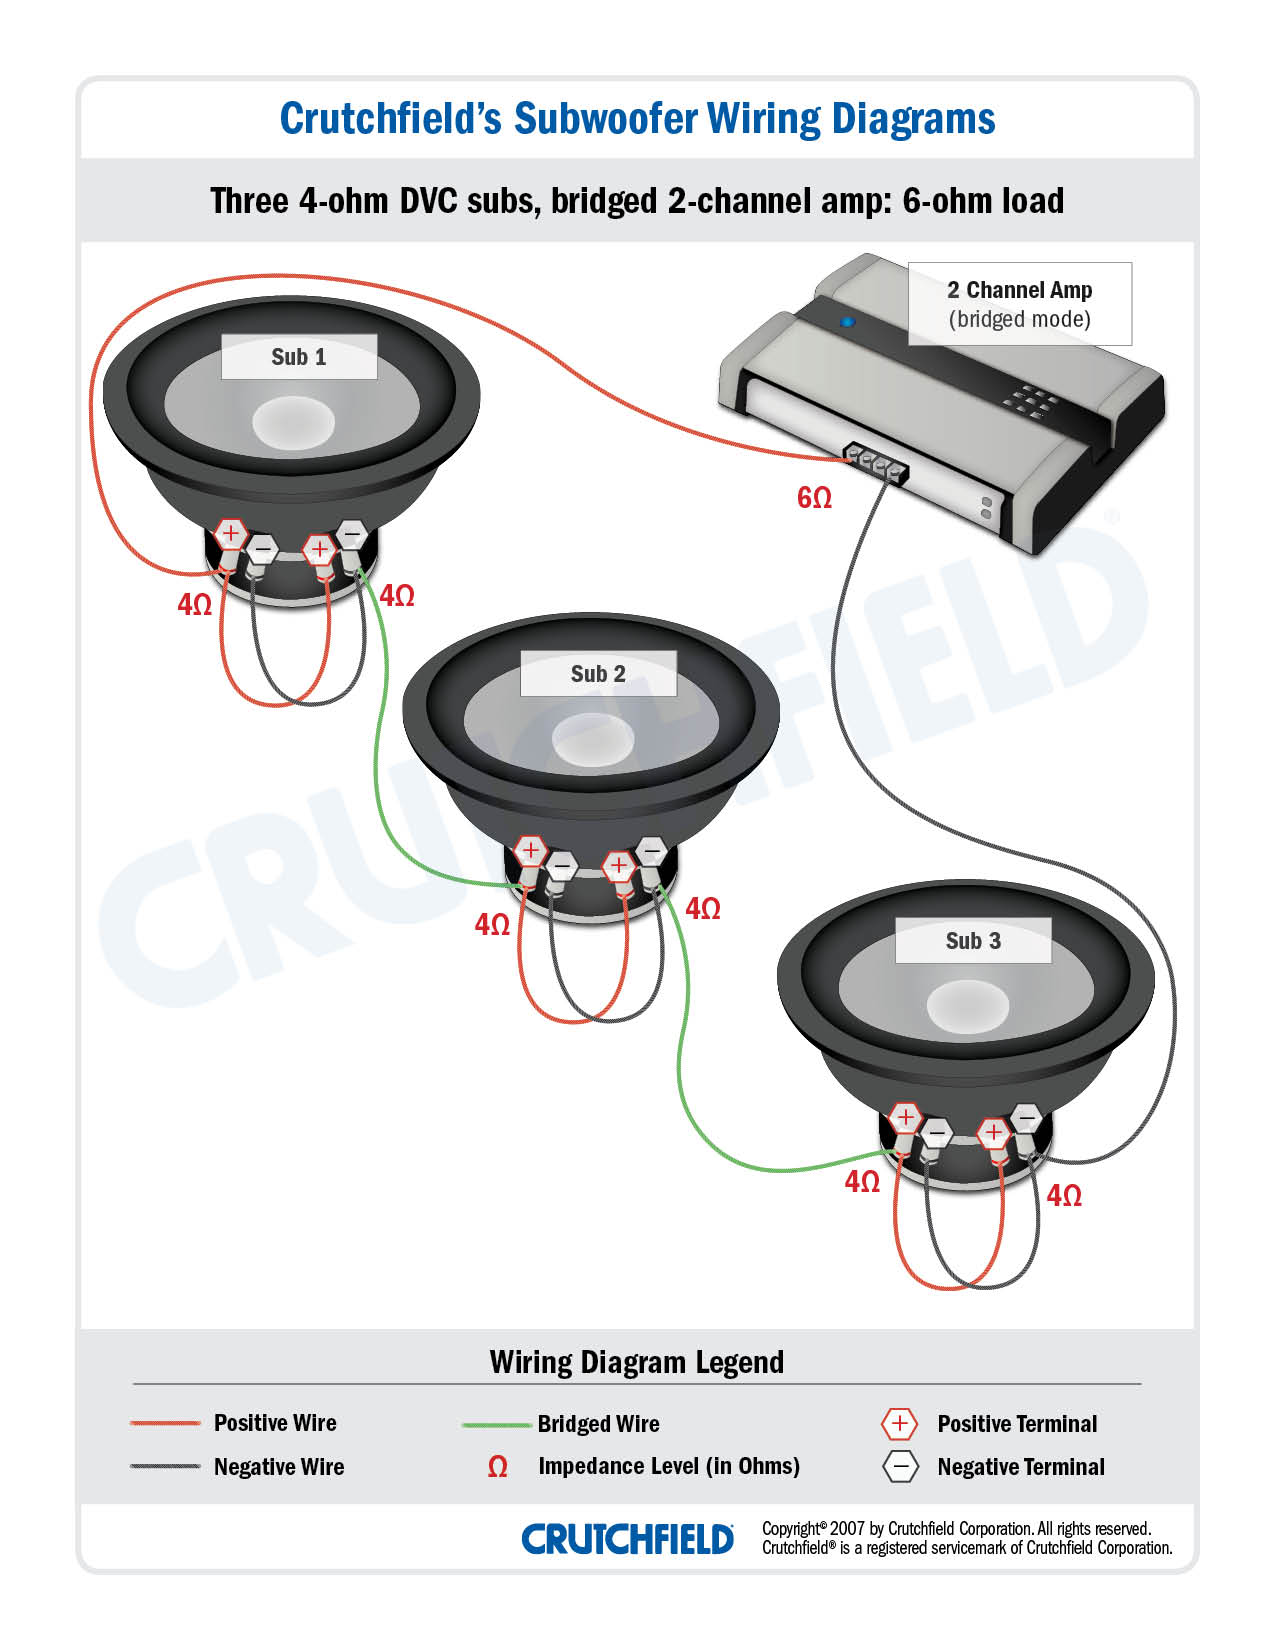 3 DVC 4 ohm 2 ch subwoofer wiring diagrams  at crackthecode.co